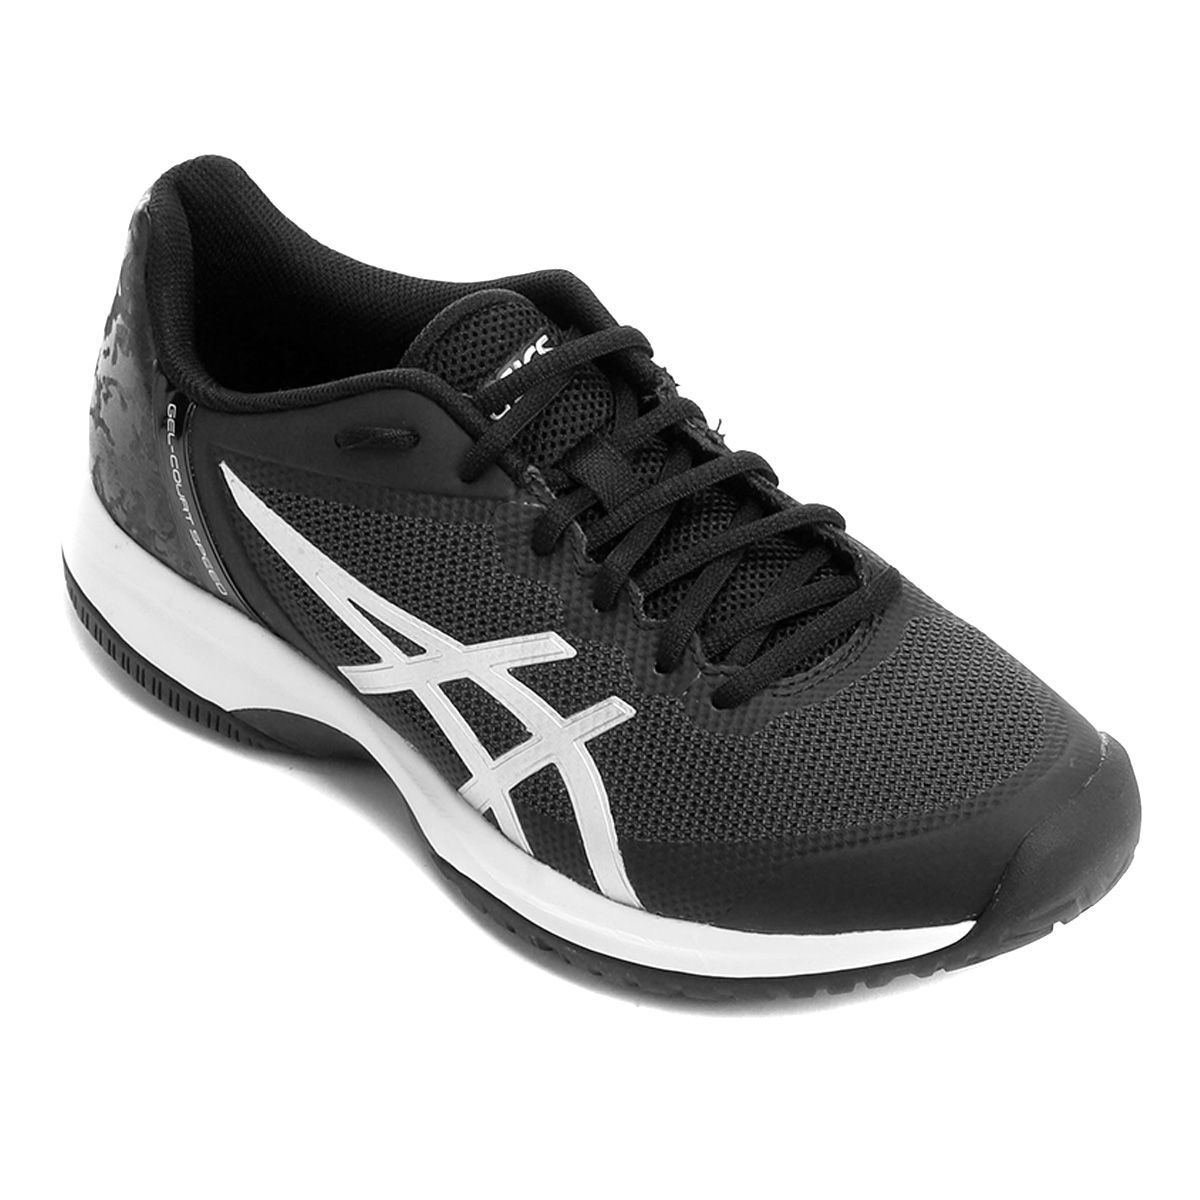 Tênis Asics Gel Court Speed - Preto e Branco